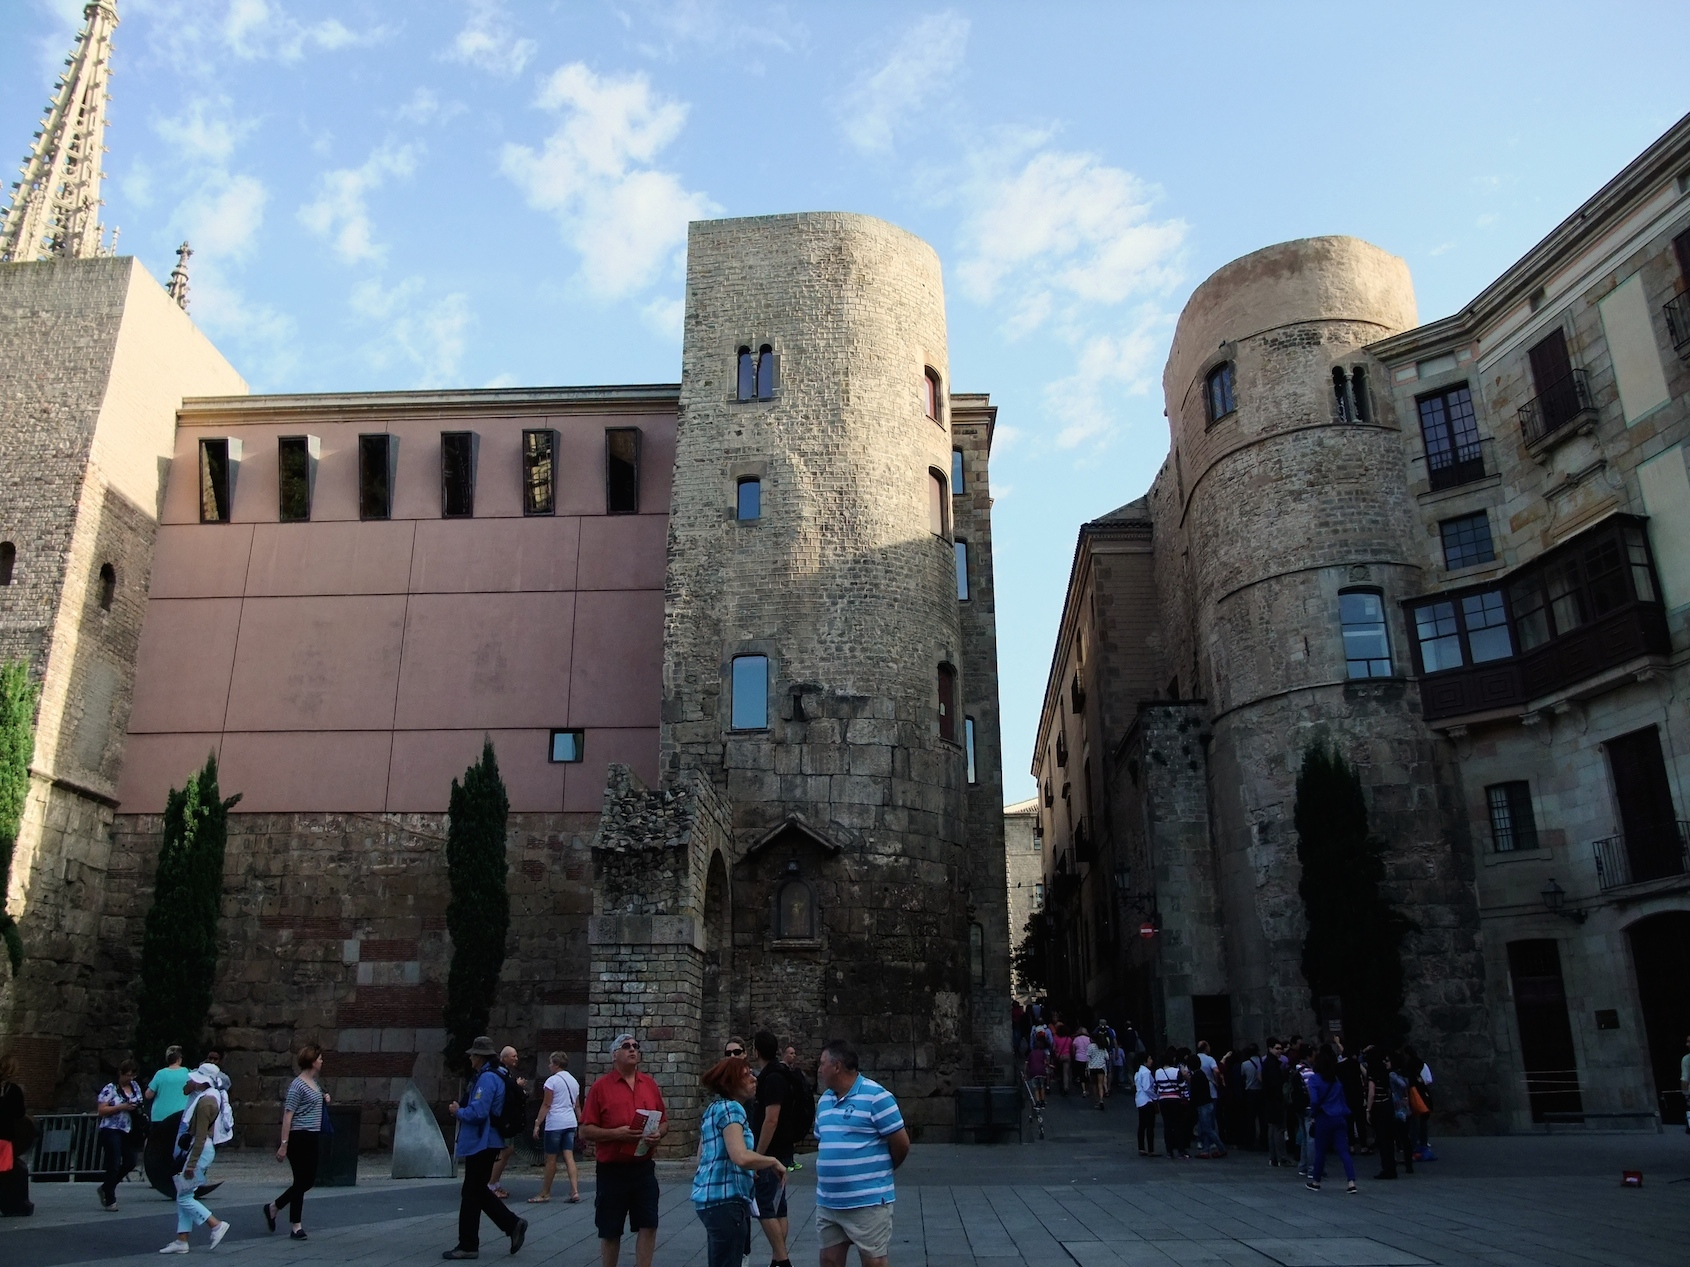 Remains of the Roman wall around the city in the Gothic Quarter